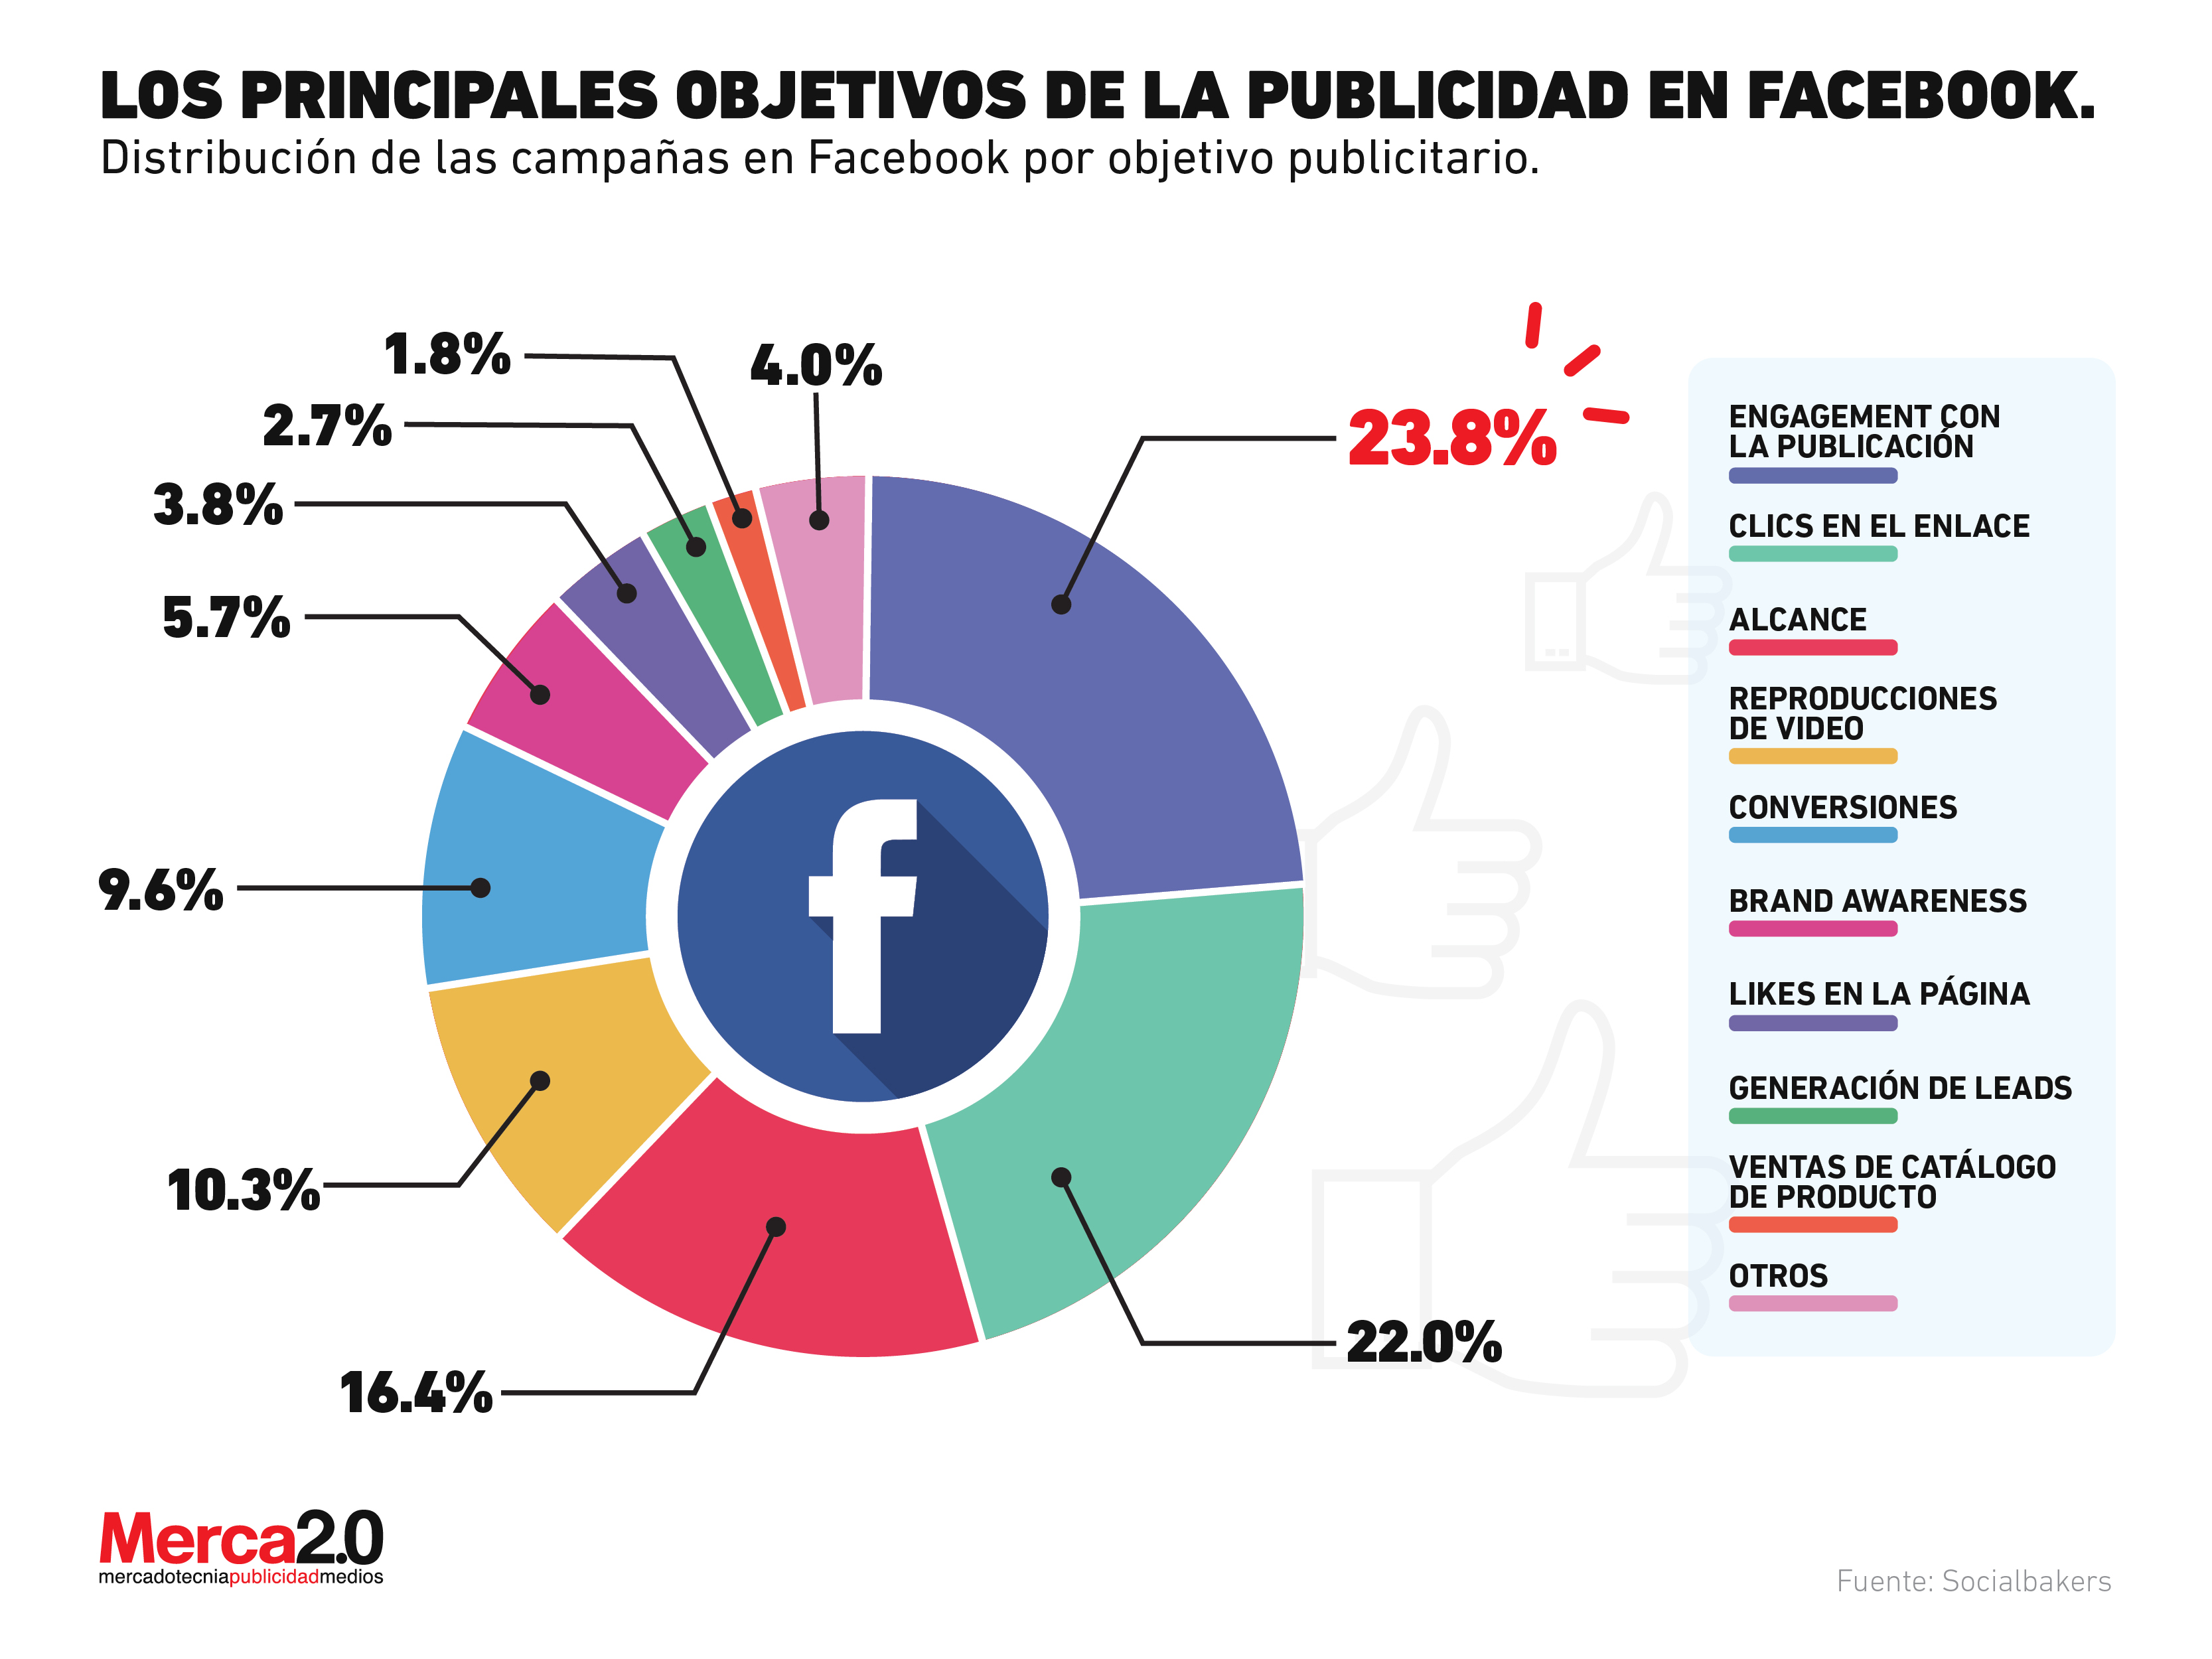 What are the main objectives of the Facebook campaigns that the brands carry out?